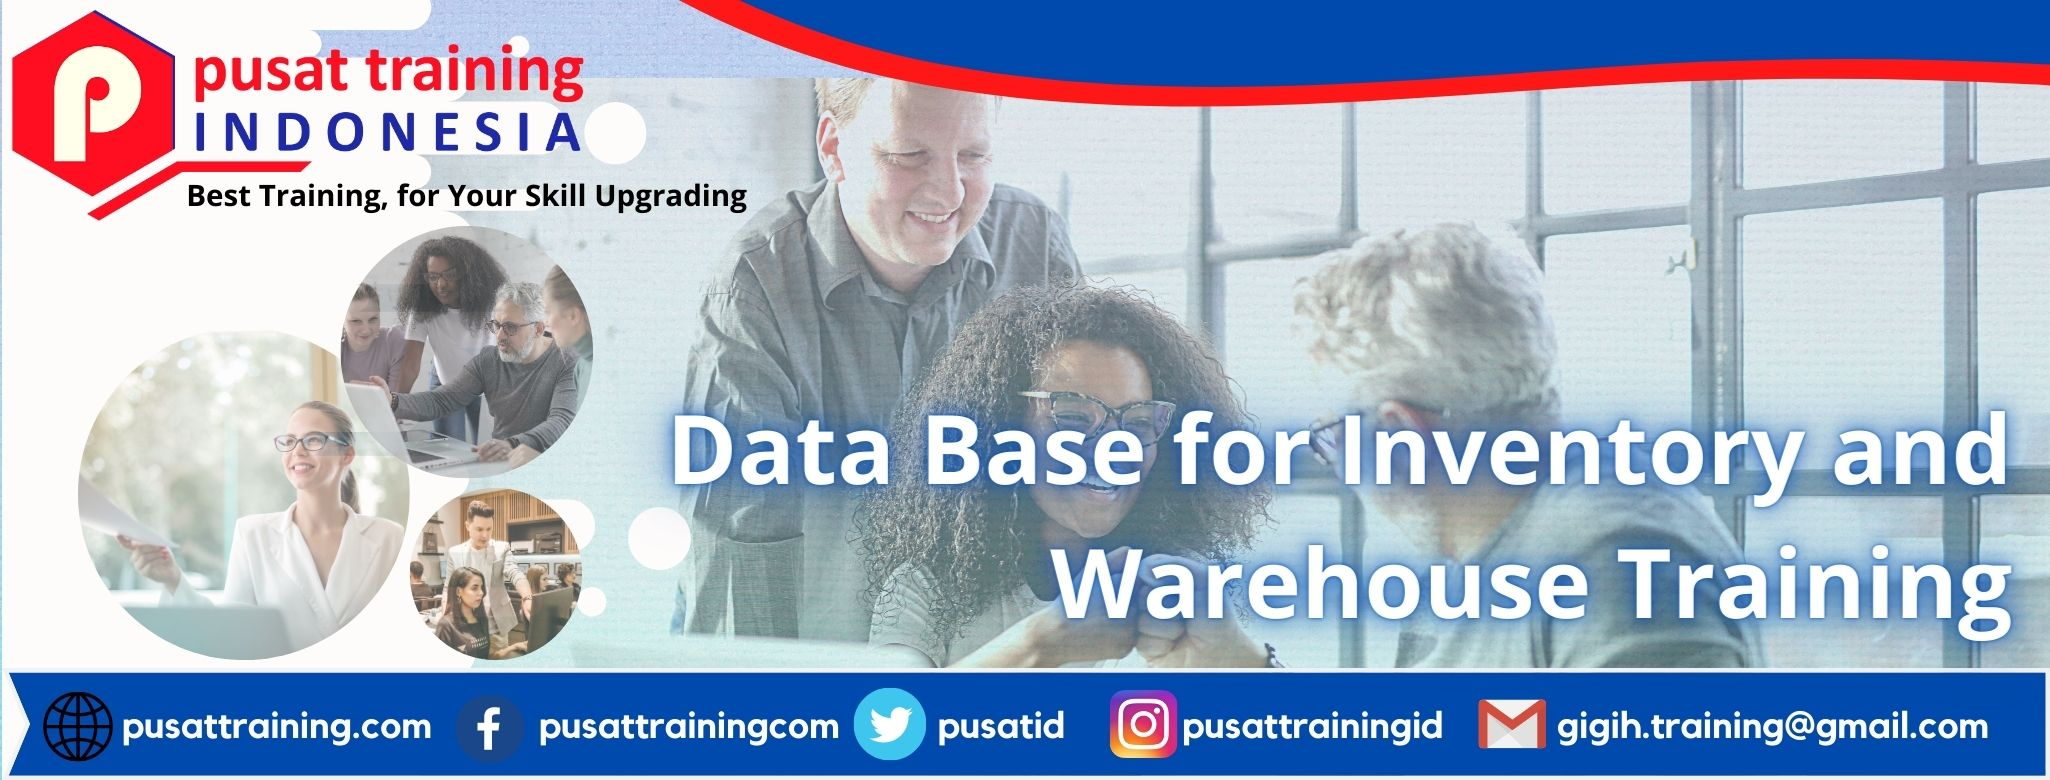 Data-Base-for-Inventory-and-Warehouse-Training